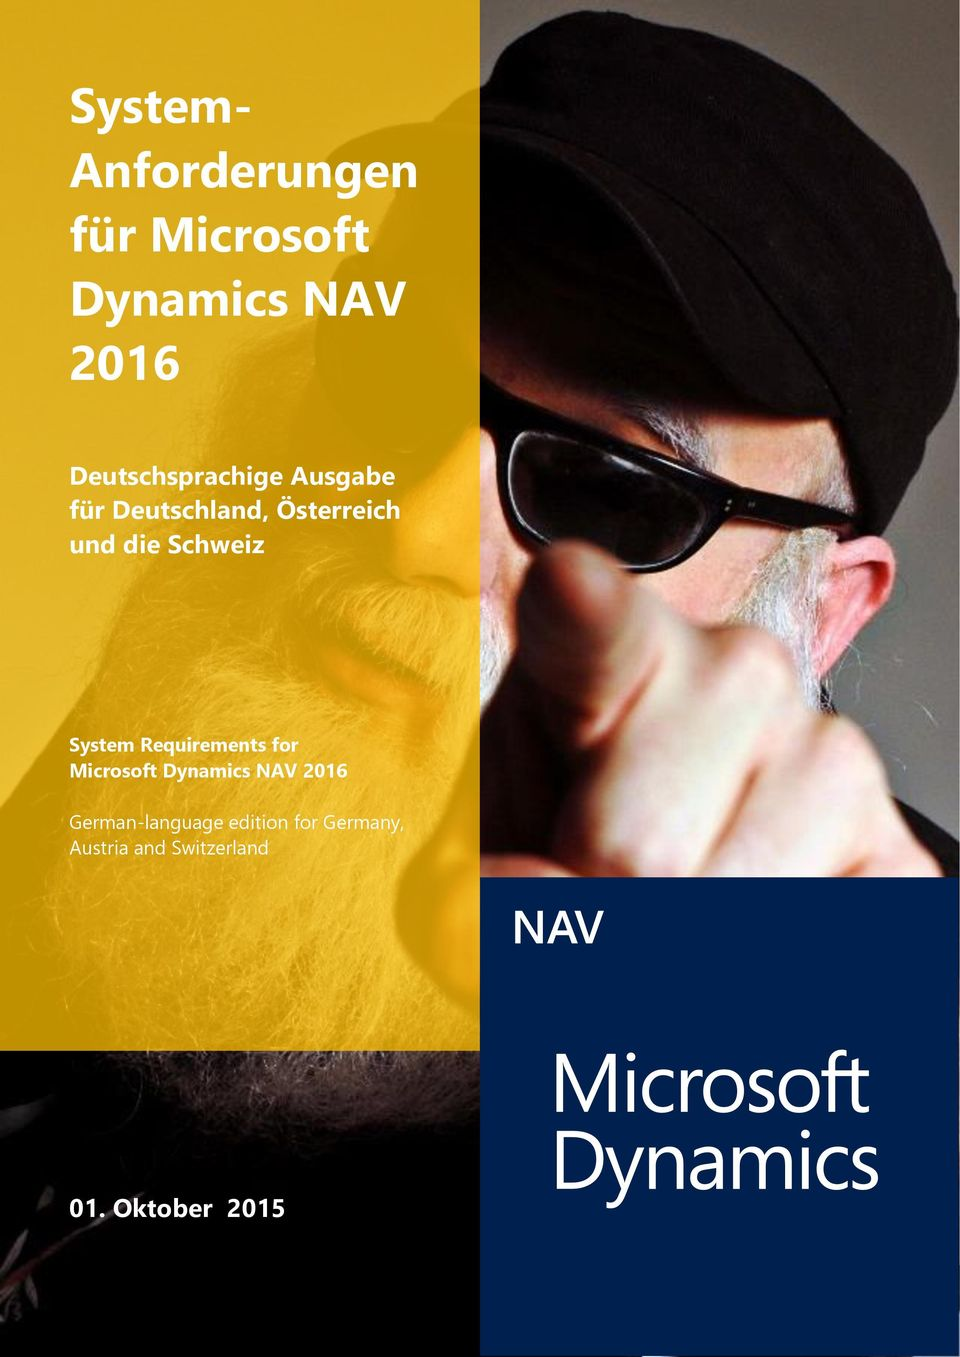 Dynamics NAV 2016 German-language edition for Germany, Austria and Switzerland